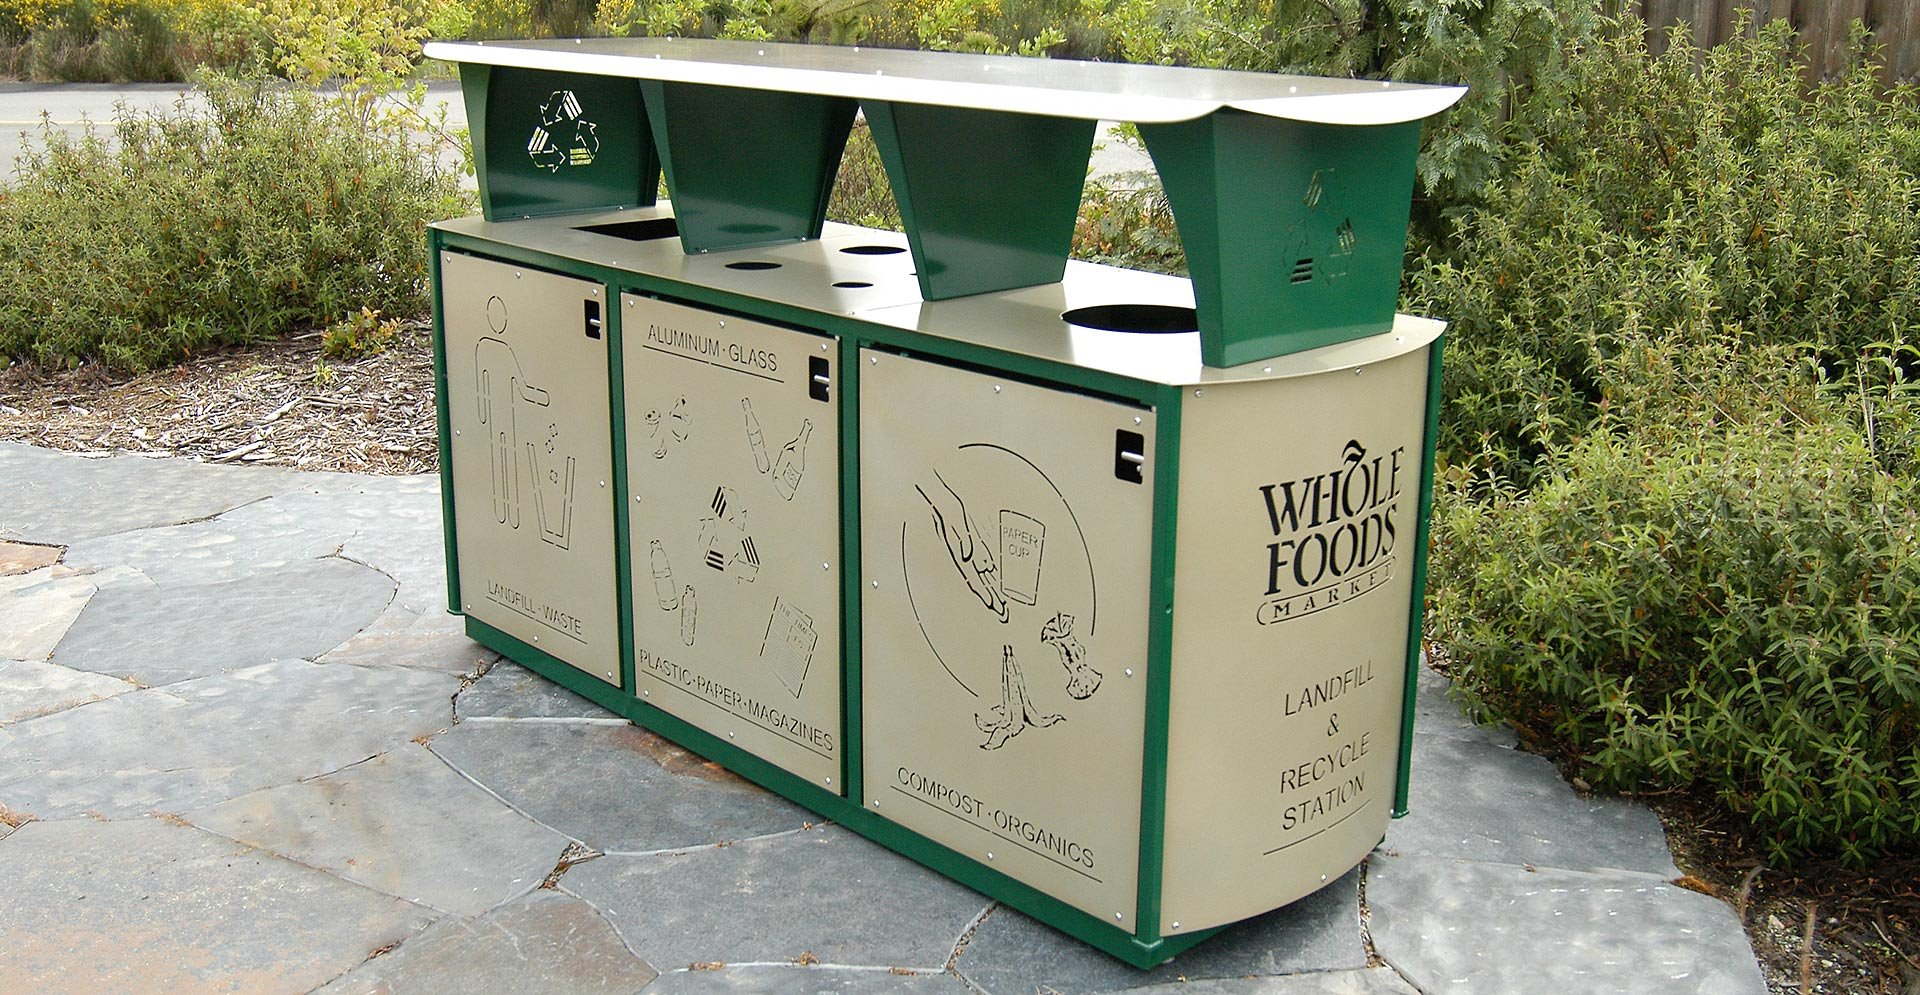 EarthSmart Bin with Bins for trash and recycling